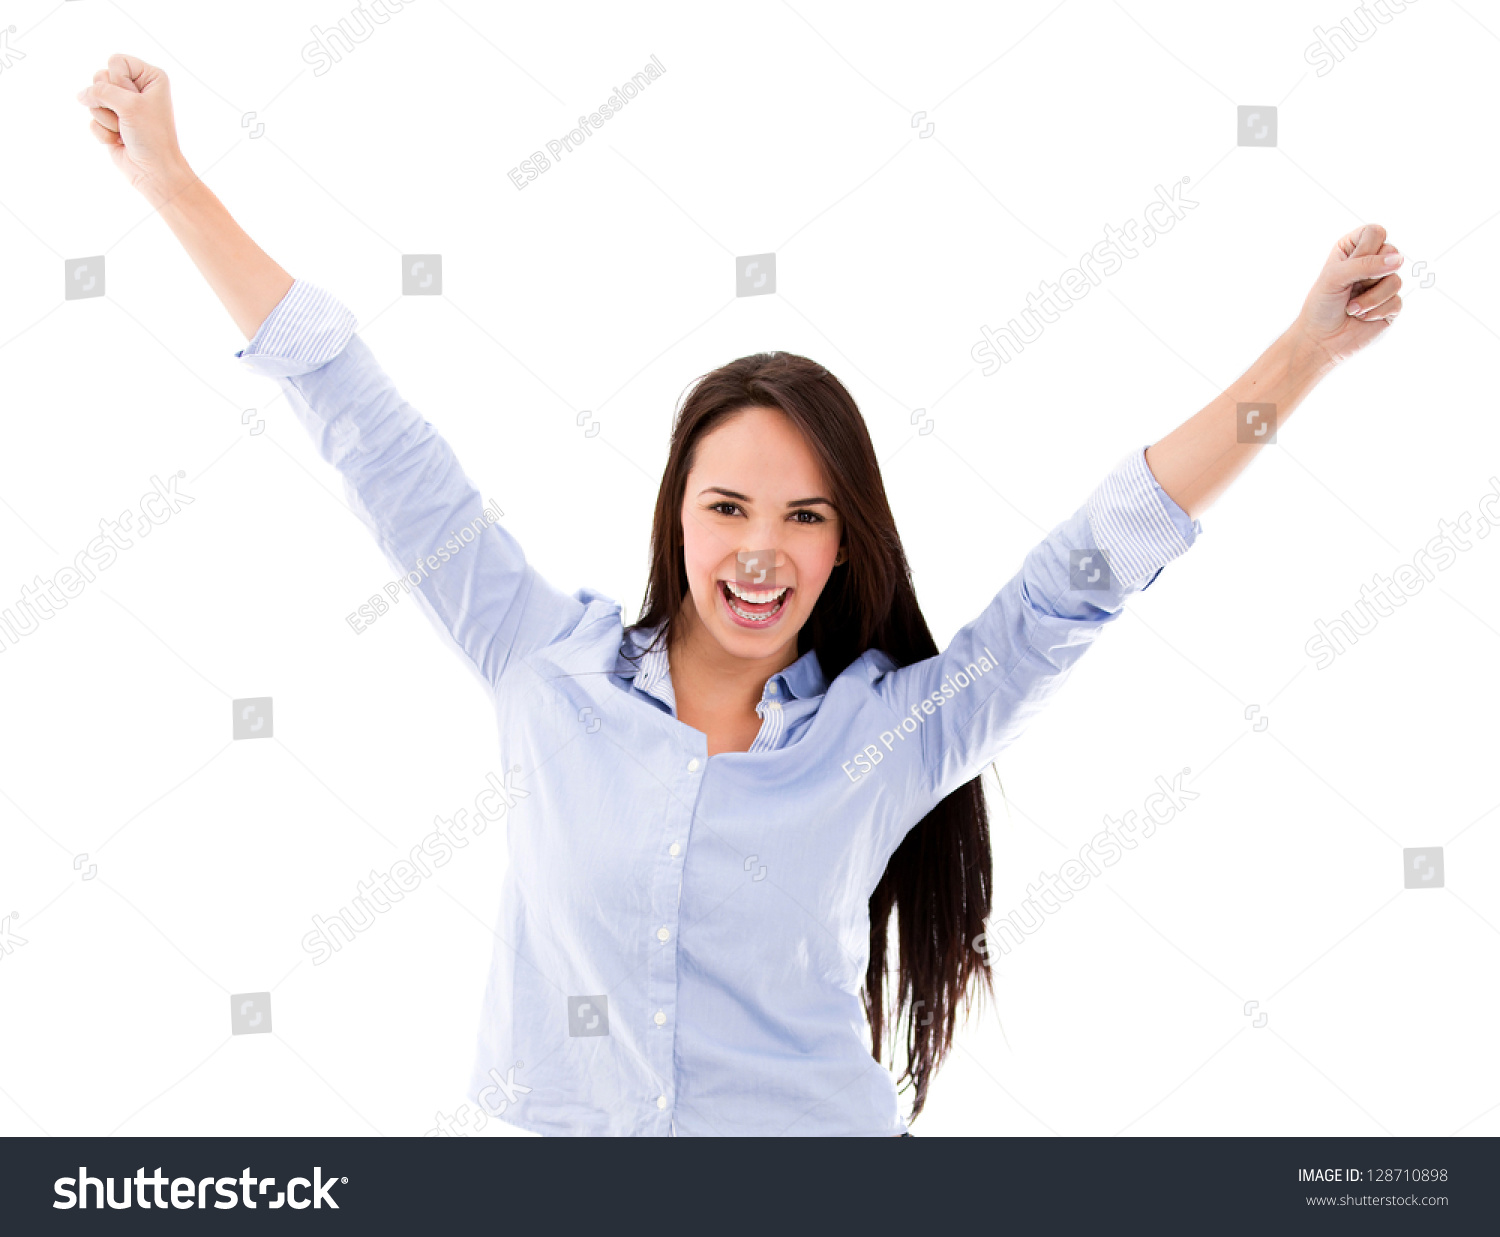 successful w arms isolated over white stock photo  successful w arms up isolated over a white background